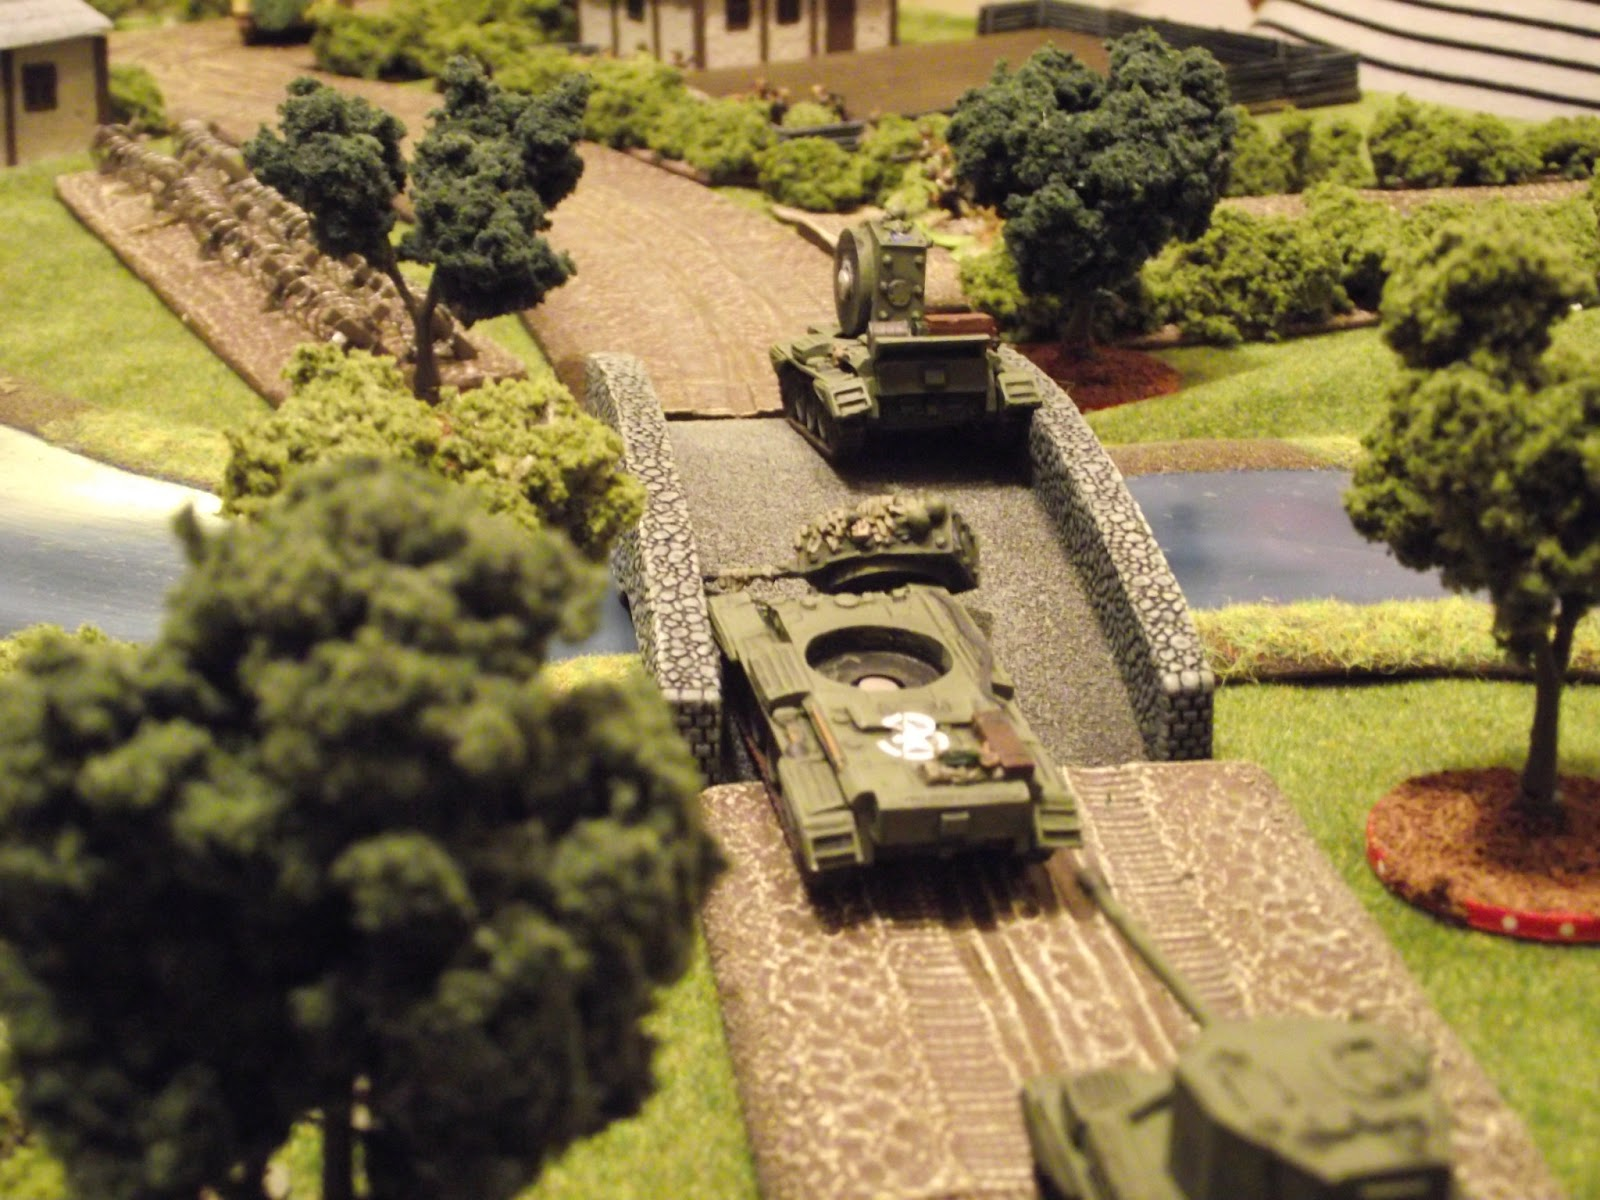 The PaK40 takes out the secondCromwell on a great shot.